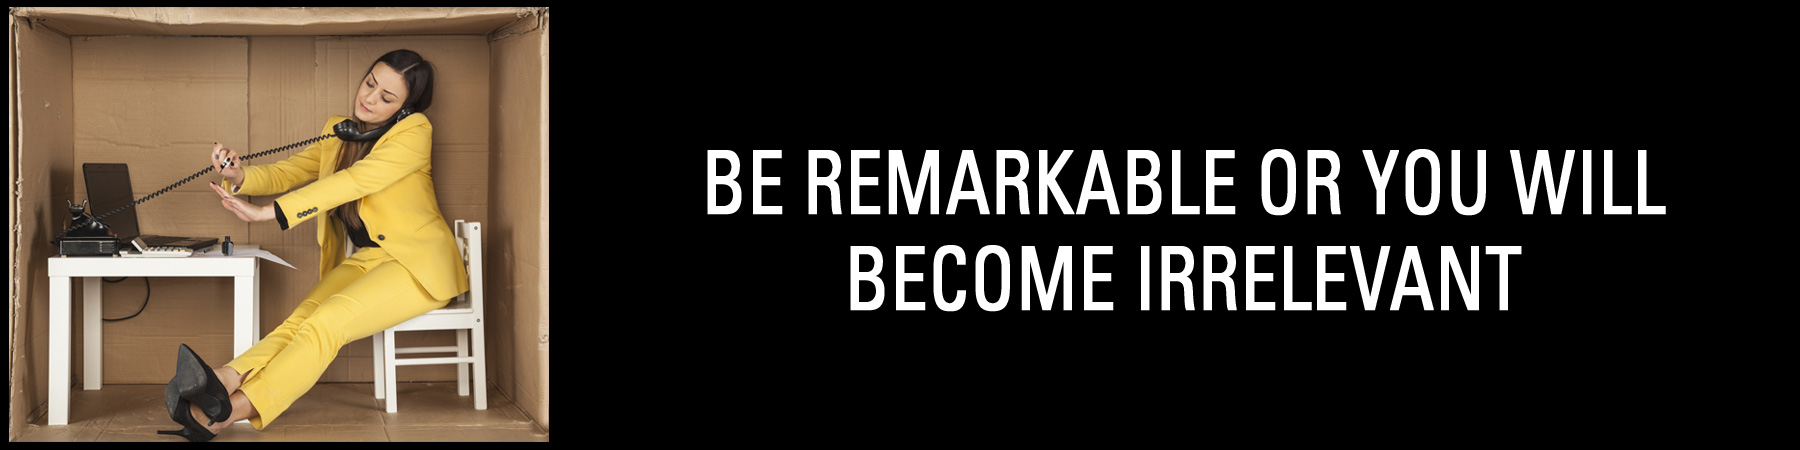 BE REMARKABLE OR YOU WILL BECOME IRRELEVANT